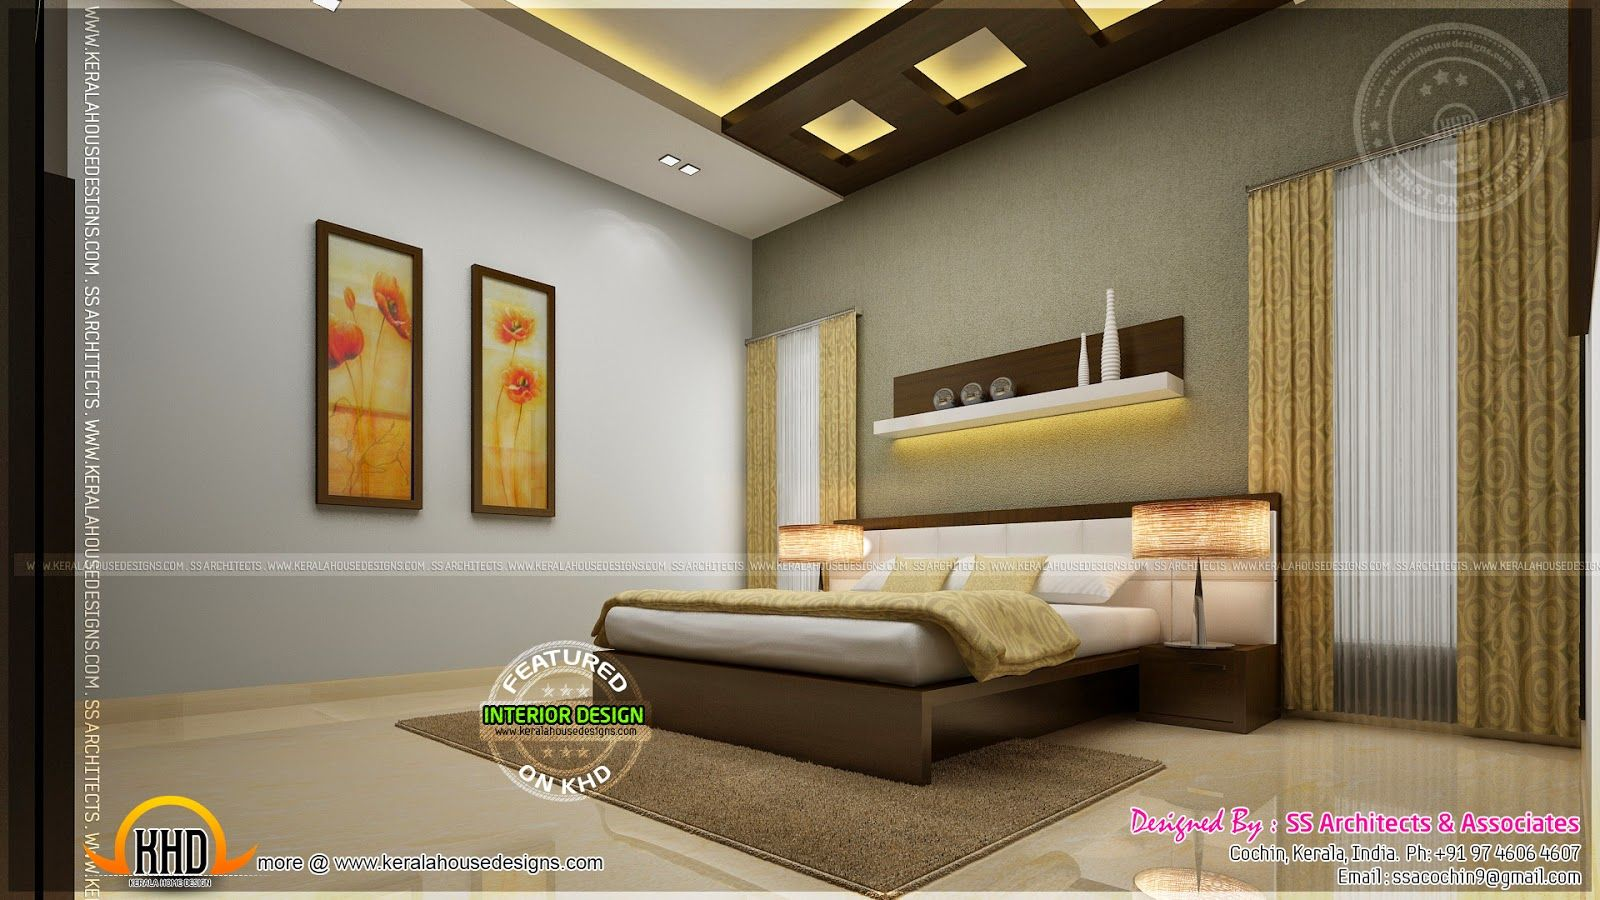 Indian Master Bedroom Interior Design Google Search Interior Design Bedroom Master Bedroom Interior Design Master Bedroom Interior